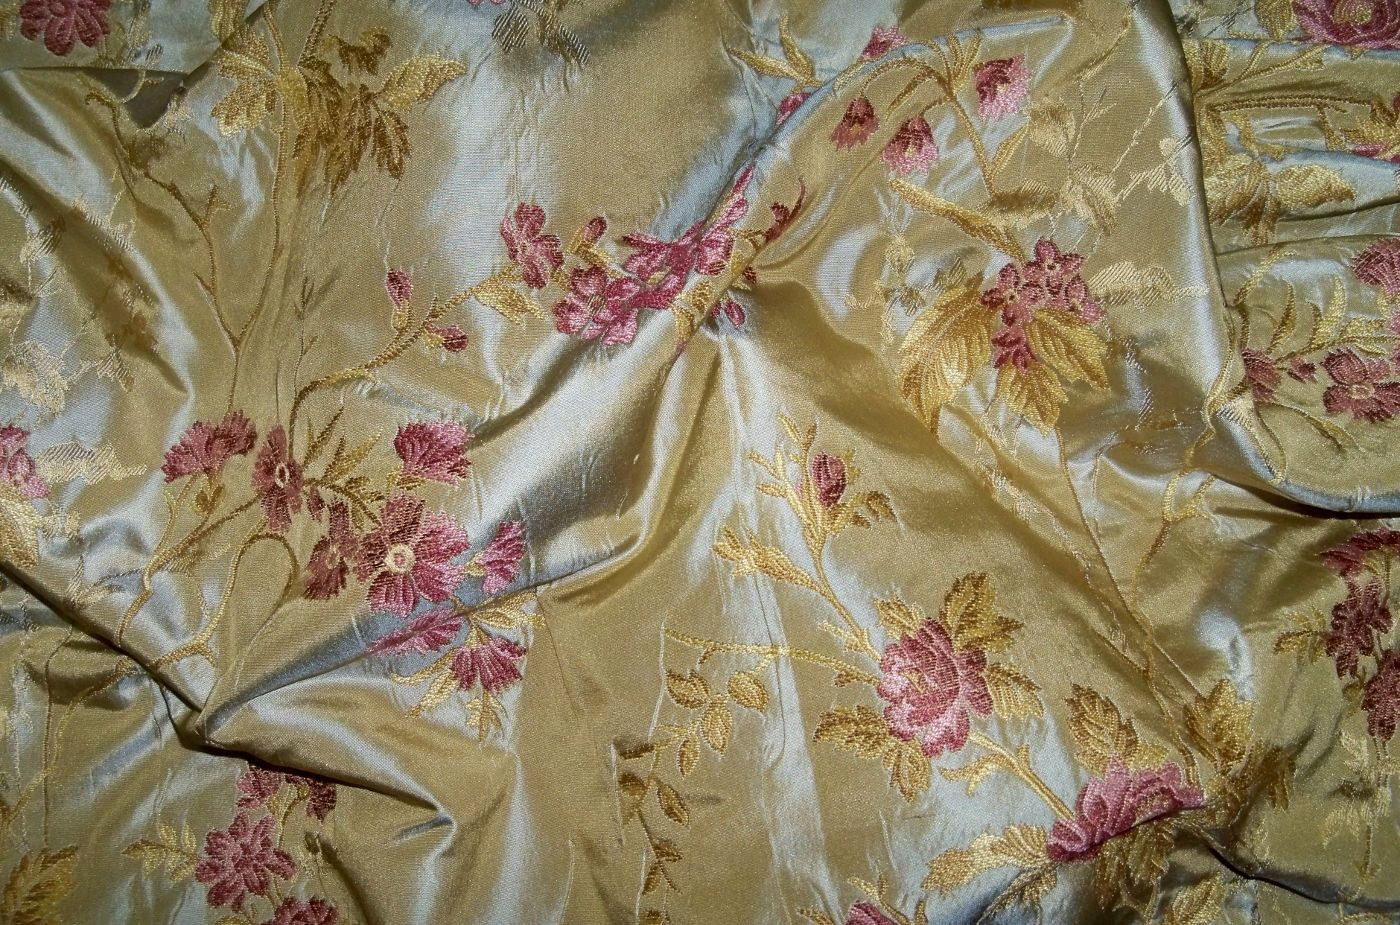 SILK LOOM FRENCH ROMANTIQUE SILK DAMASK BROCADE FABRIC GOLD ROSE PINK 1400x925